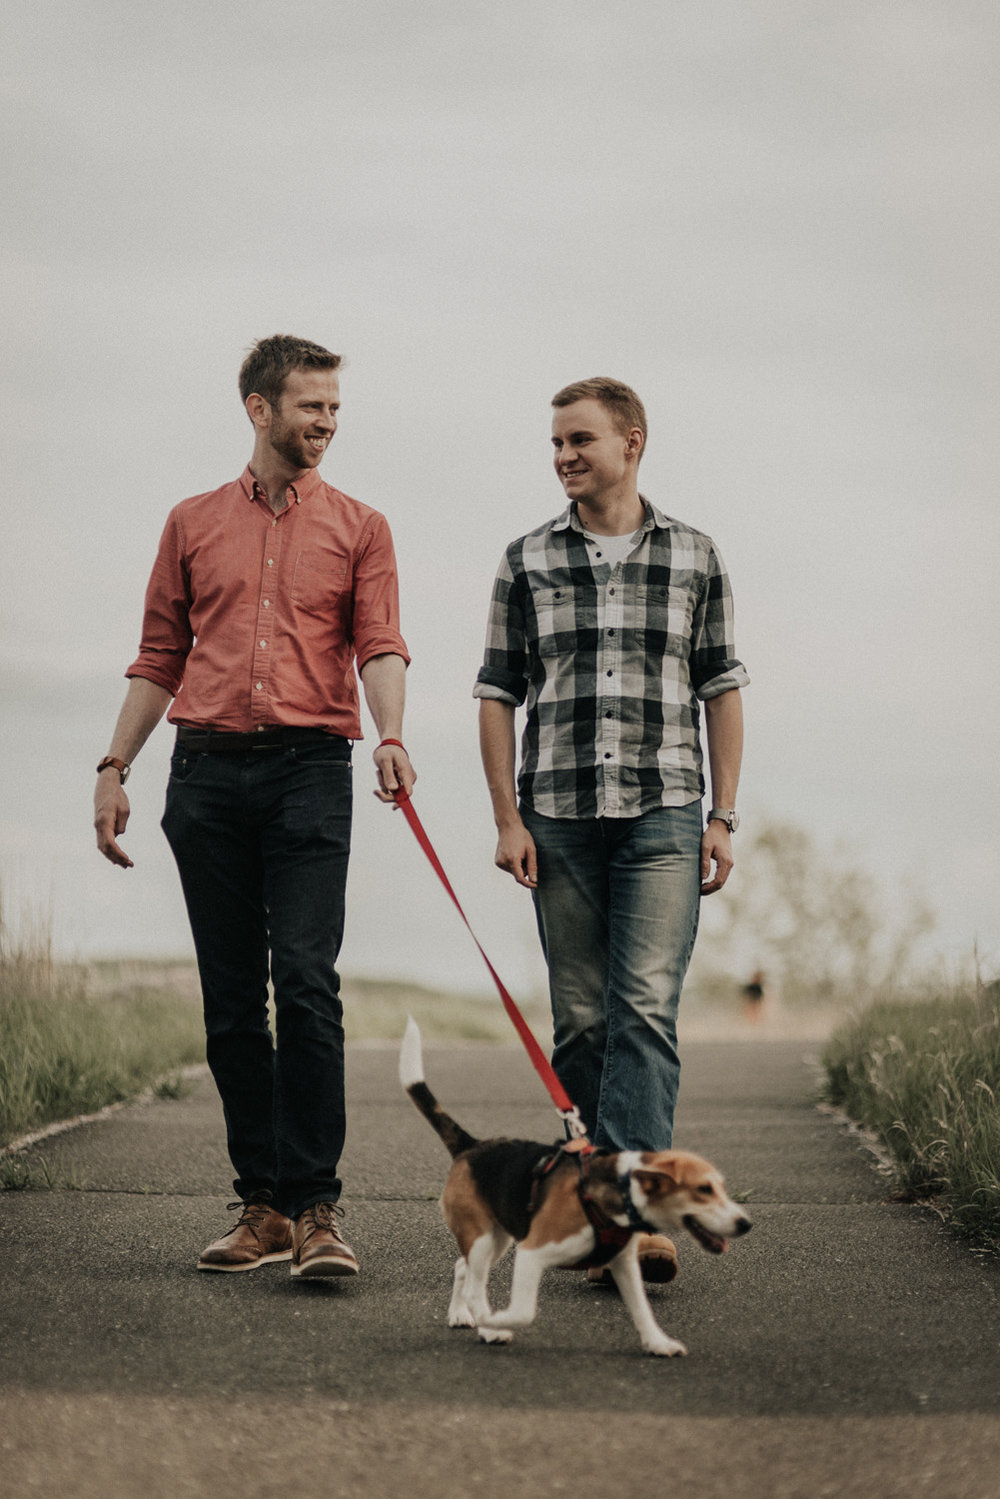 kylewillisphoto_kyle_willis_photography_bear_mountain_engagement_photos_gay_same_sex_sunset_appalacian_philadelphia_new_jersey_york_wedding_photographer_moody_engaged32.jpg